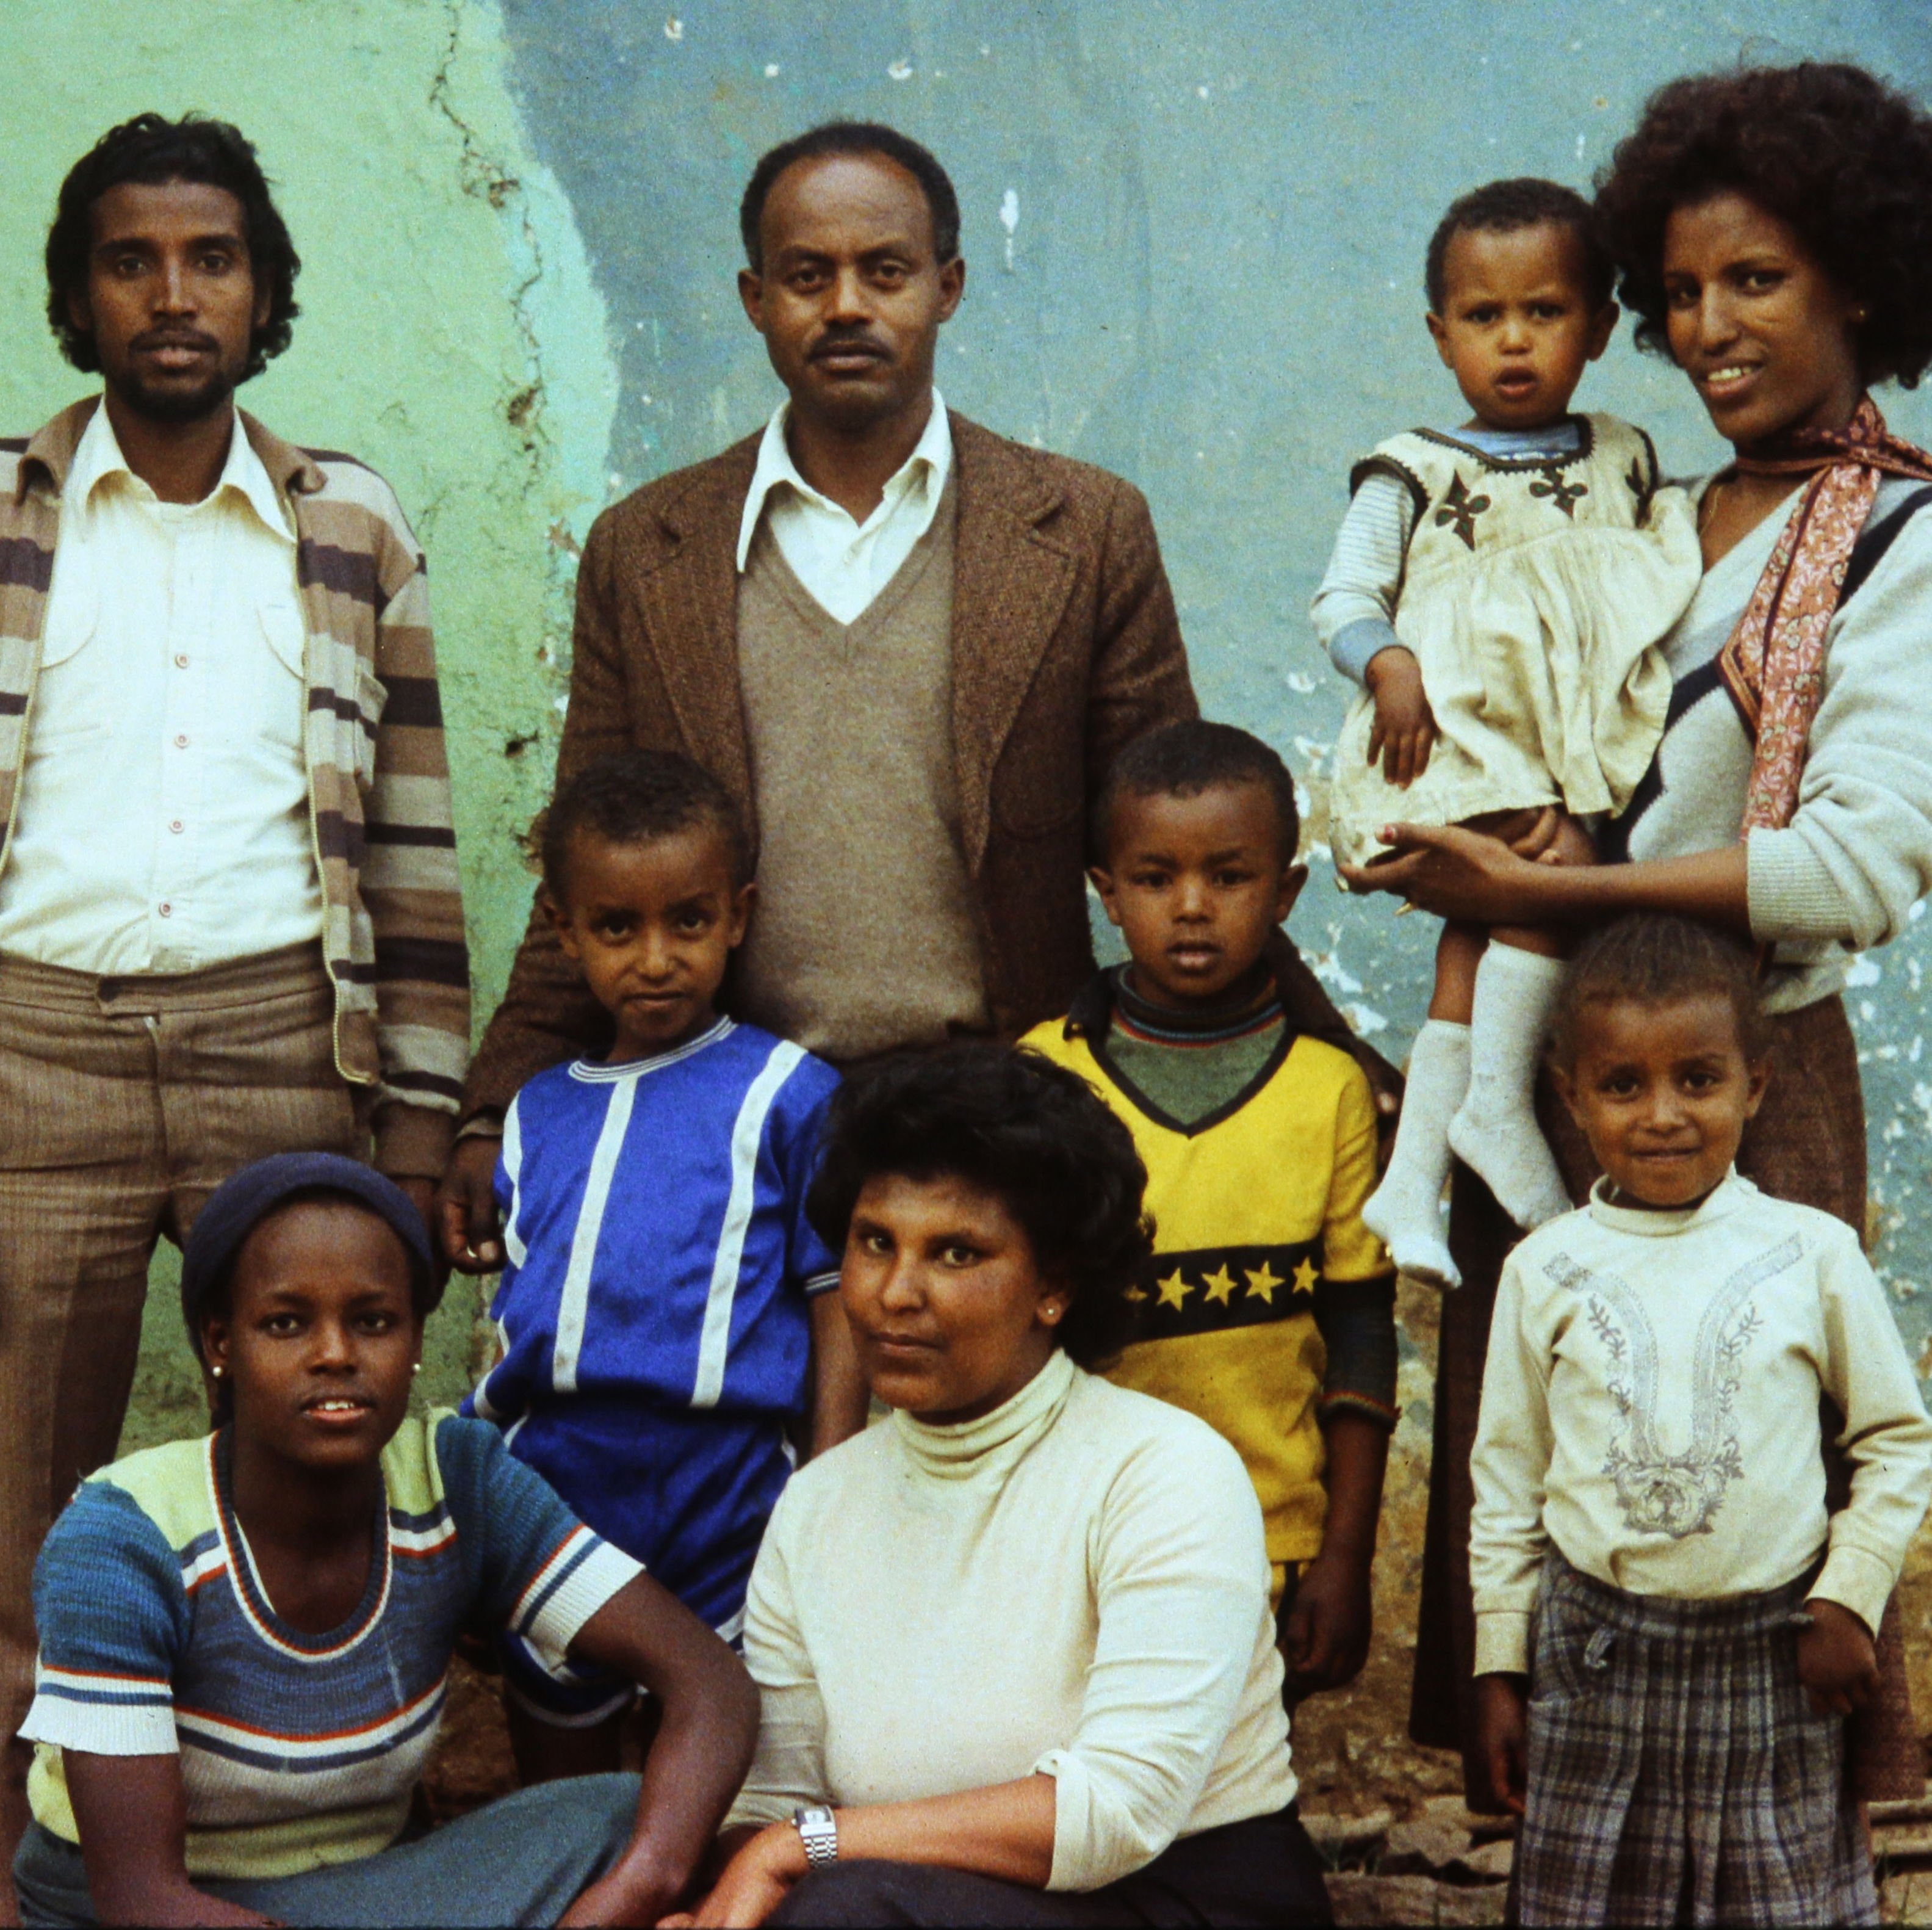 Jis 0416 ethiopian immigrant family xsh9bj